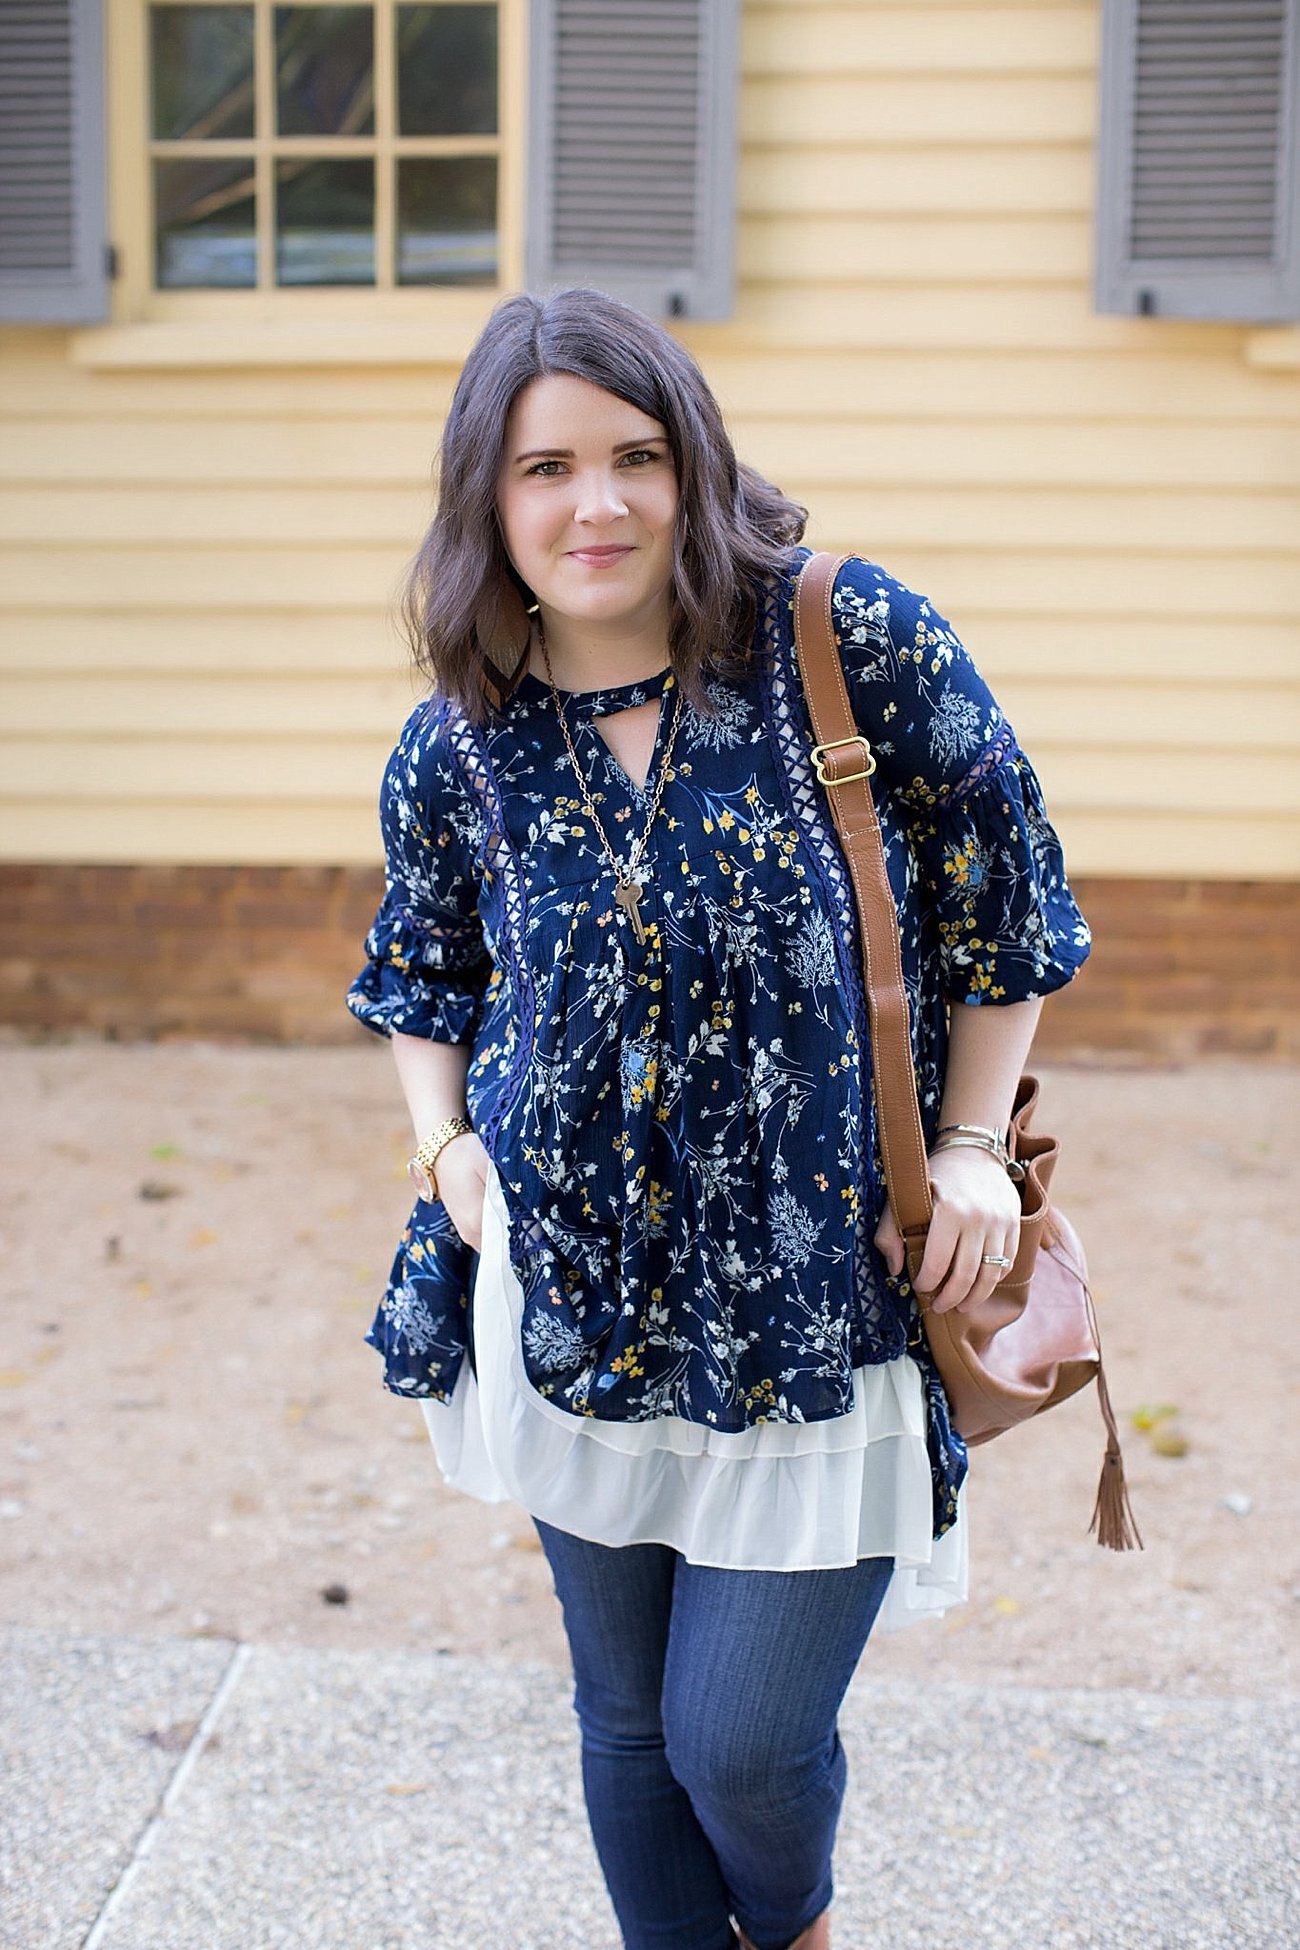 Grace & Lace peasant top and chiffon lace extender from The Flourish Market, Paige denim, Root Collective espe booties | Ethical Fashion, North Carolina Life and Style Blogger (9)